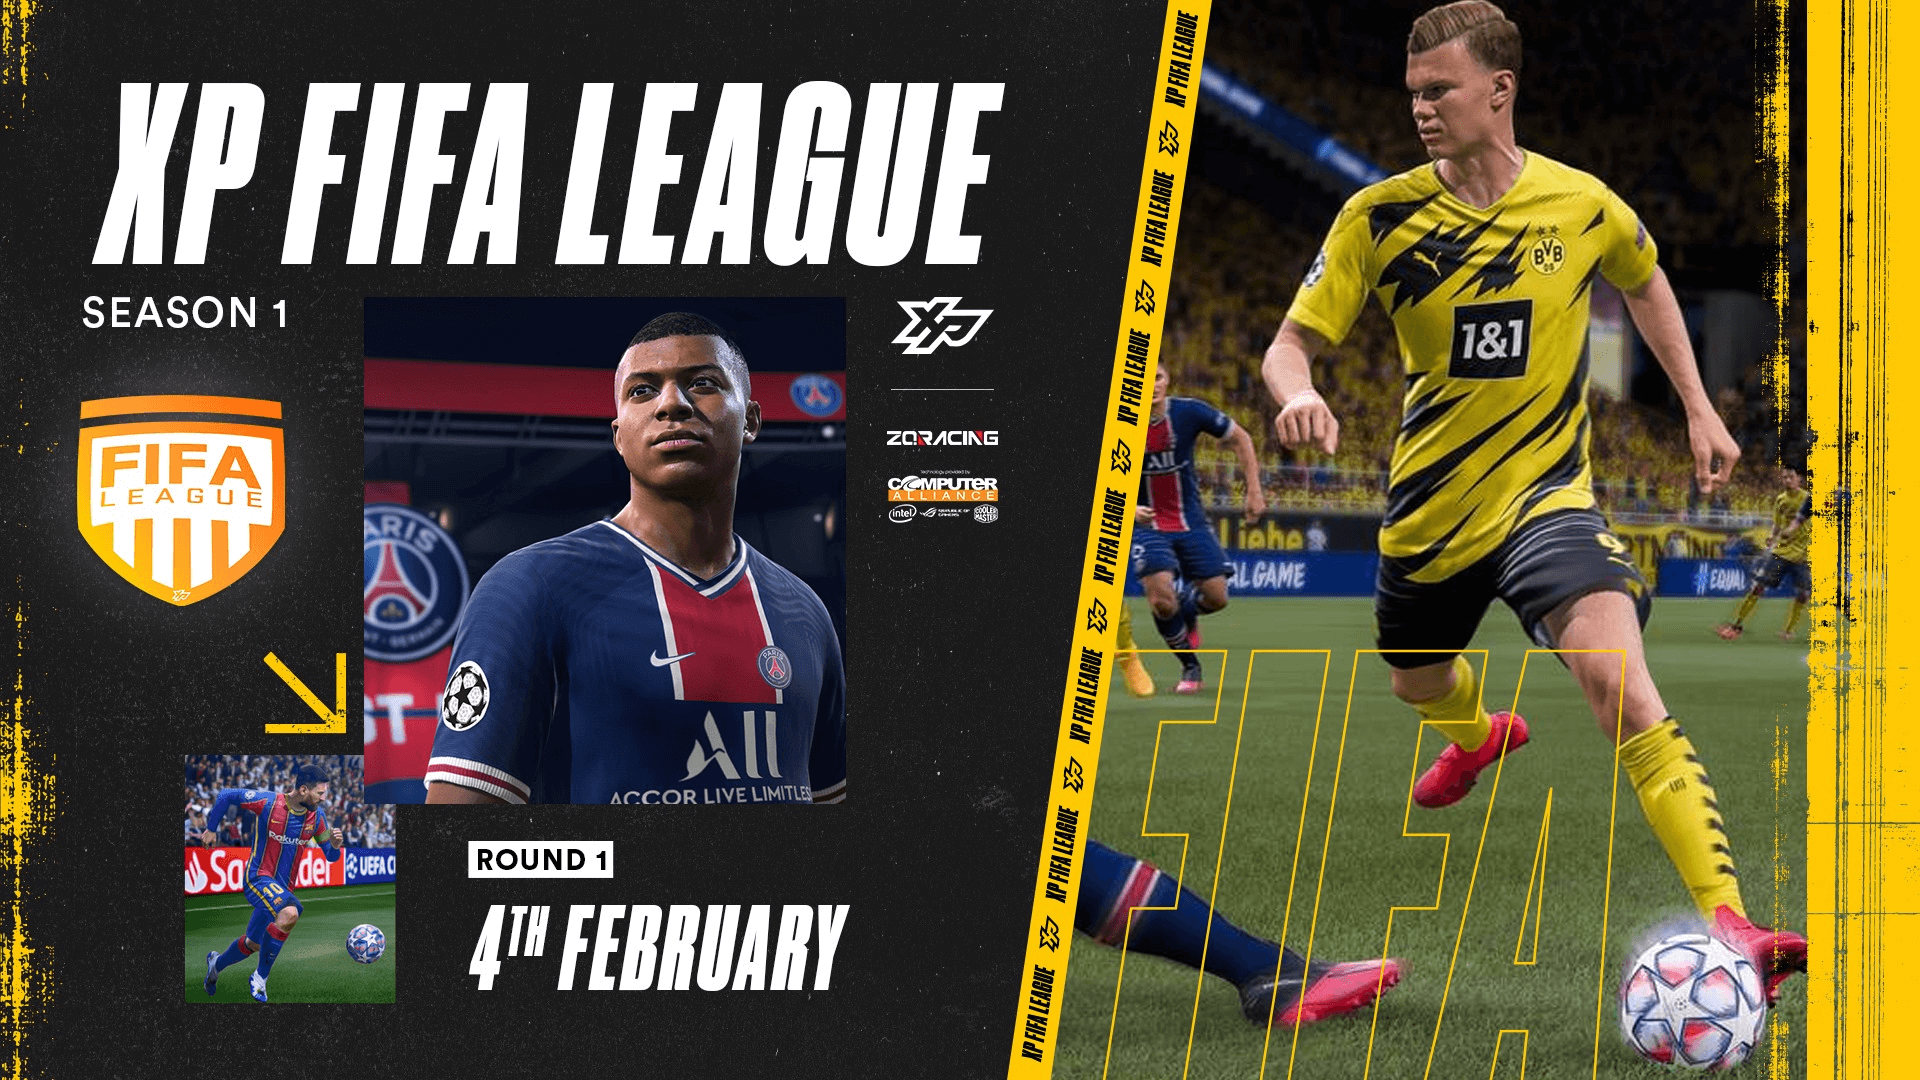 The XP FIFA League is back for 2021